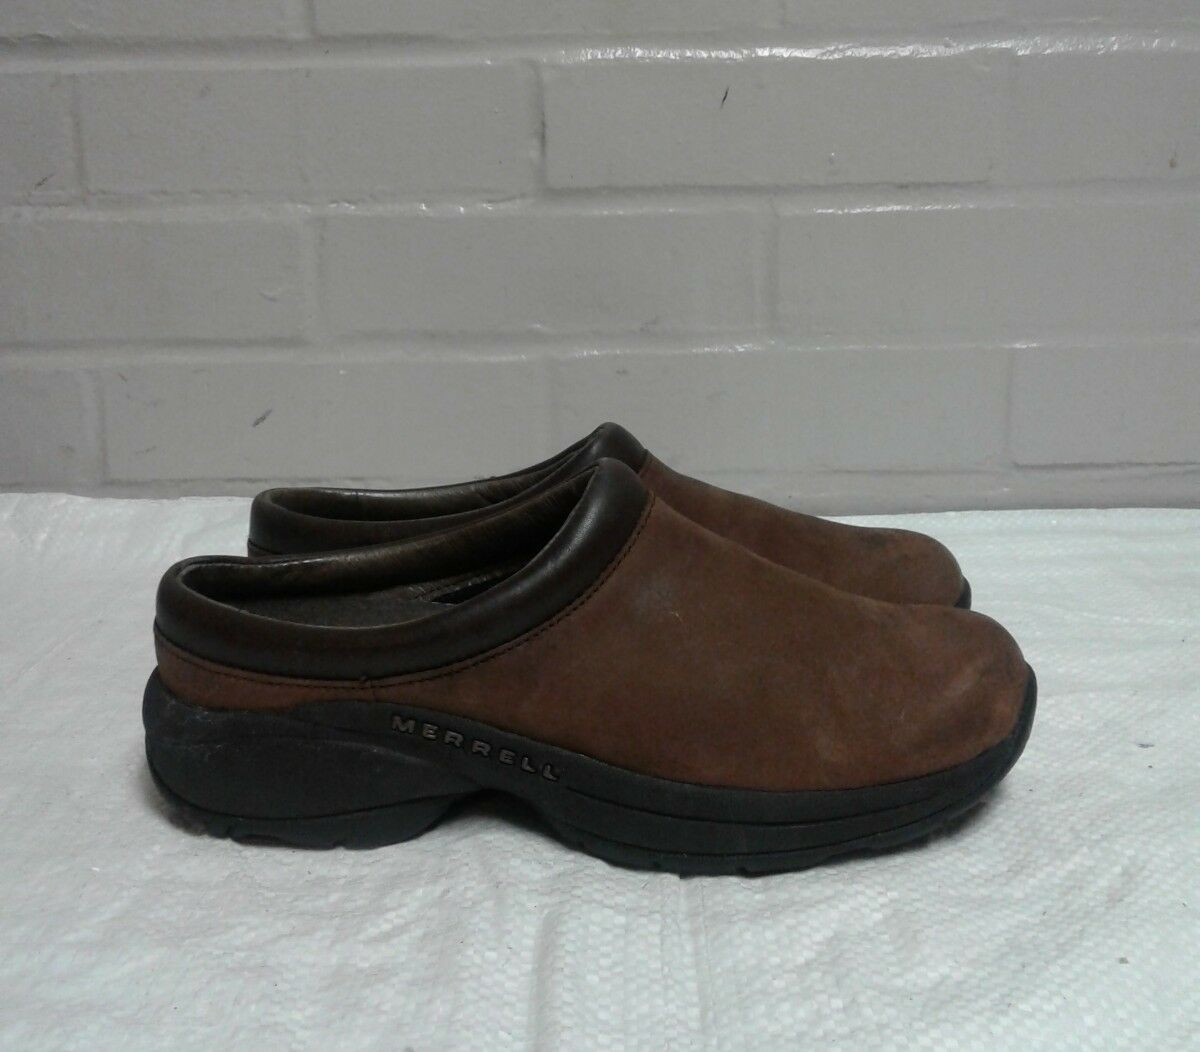 Merrell Women's Moc Jungle Primo Brown Air Cushion Suede Mule Clog Shoes US 7 image 2